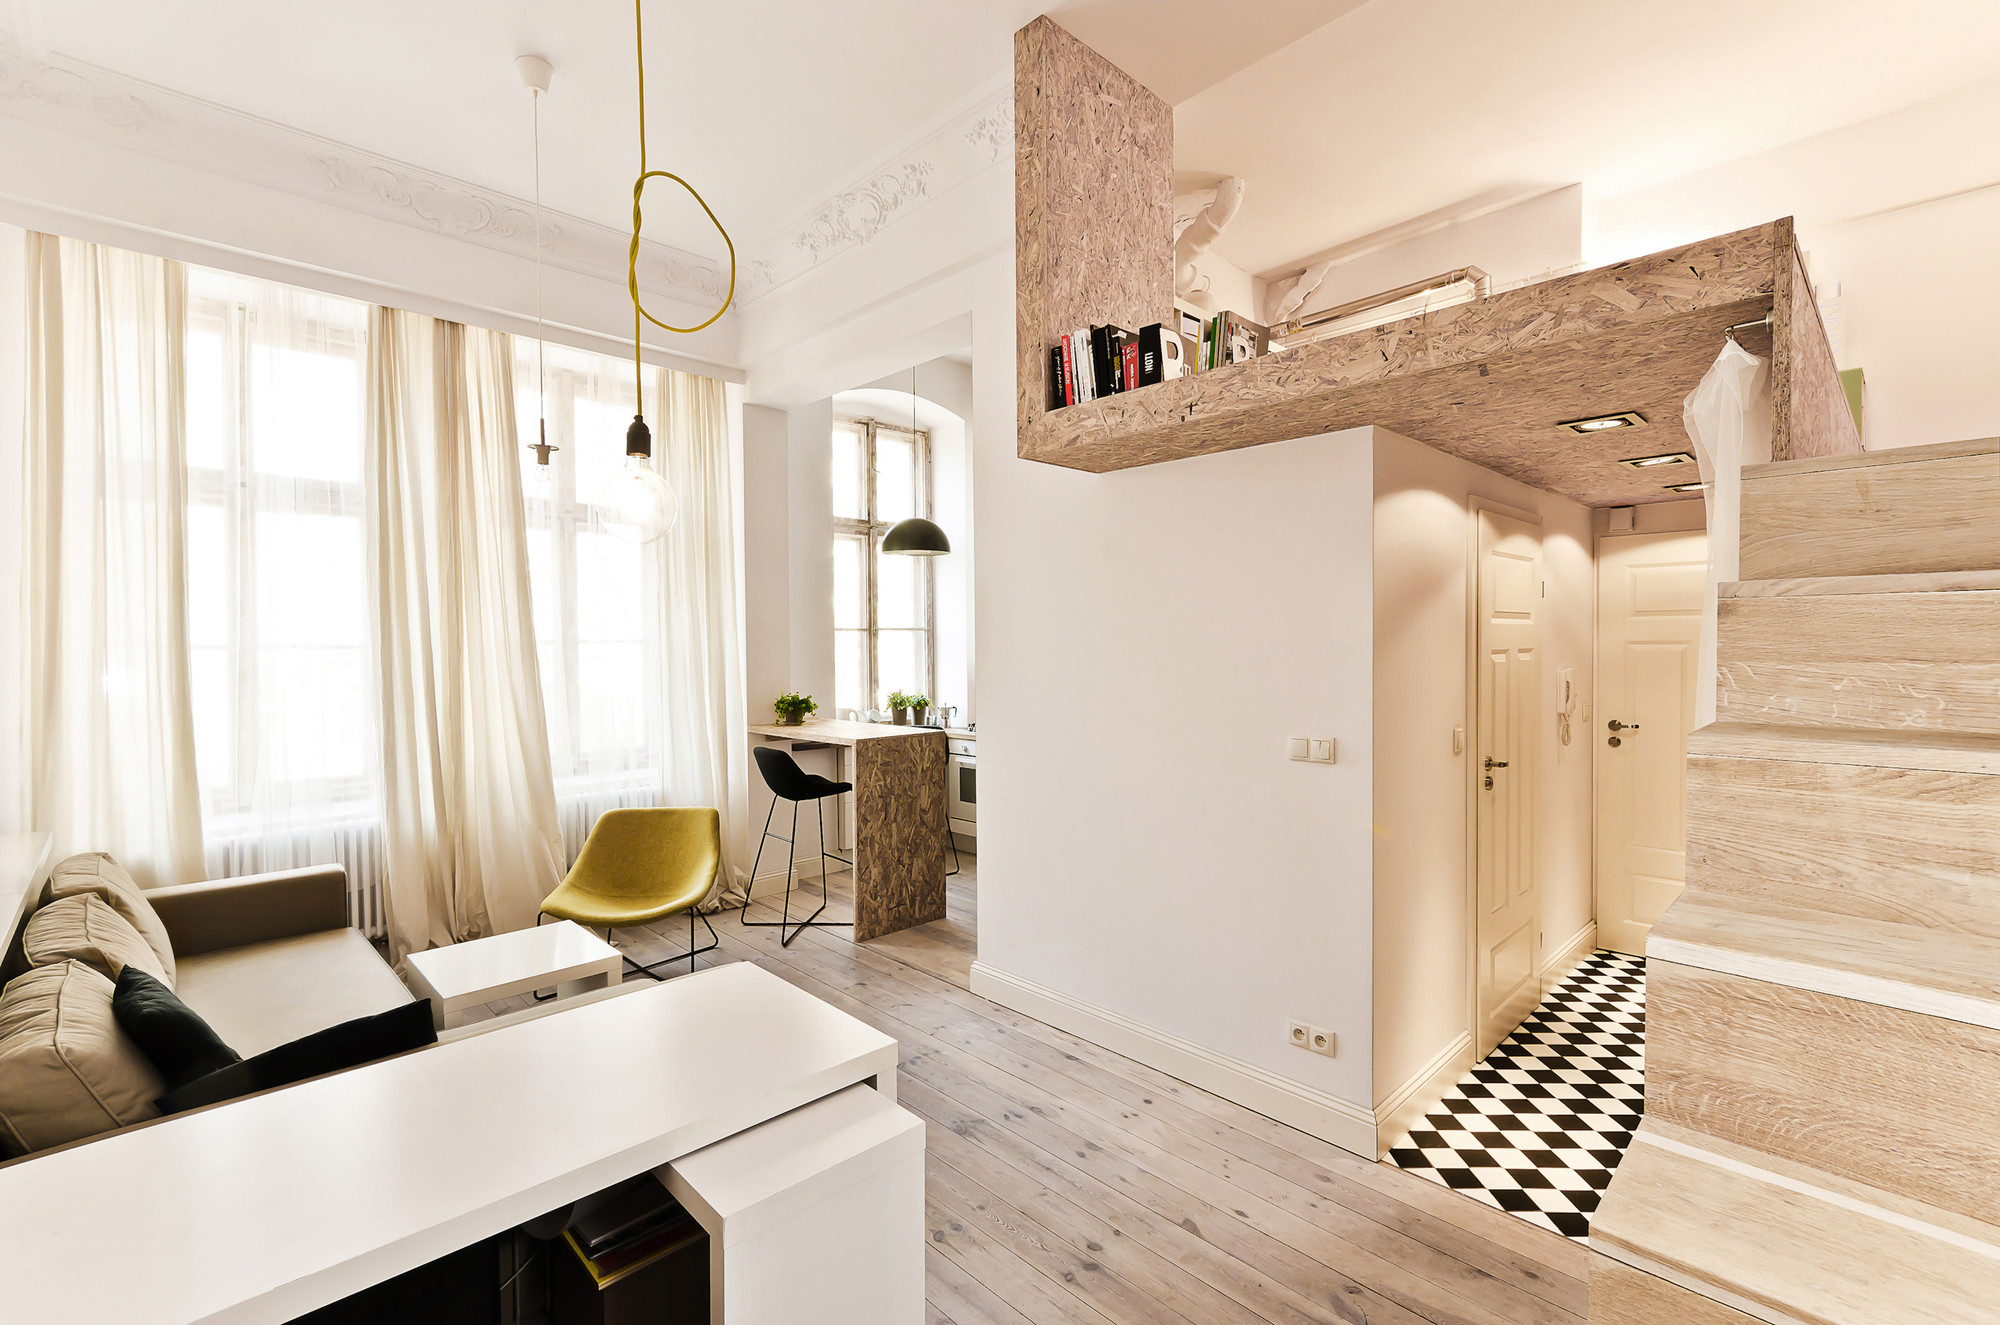 29 sqm 3xa 6 OSB Was Used To Build a Mezzanine in This Tiny 29m² Apartment